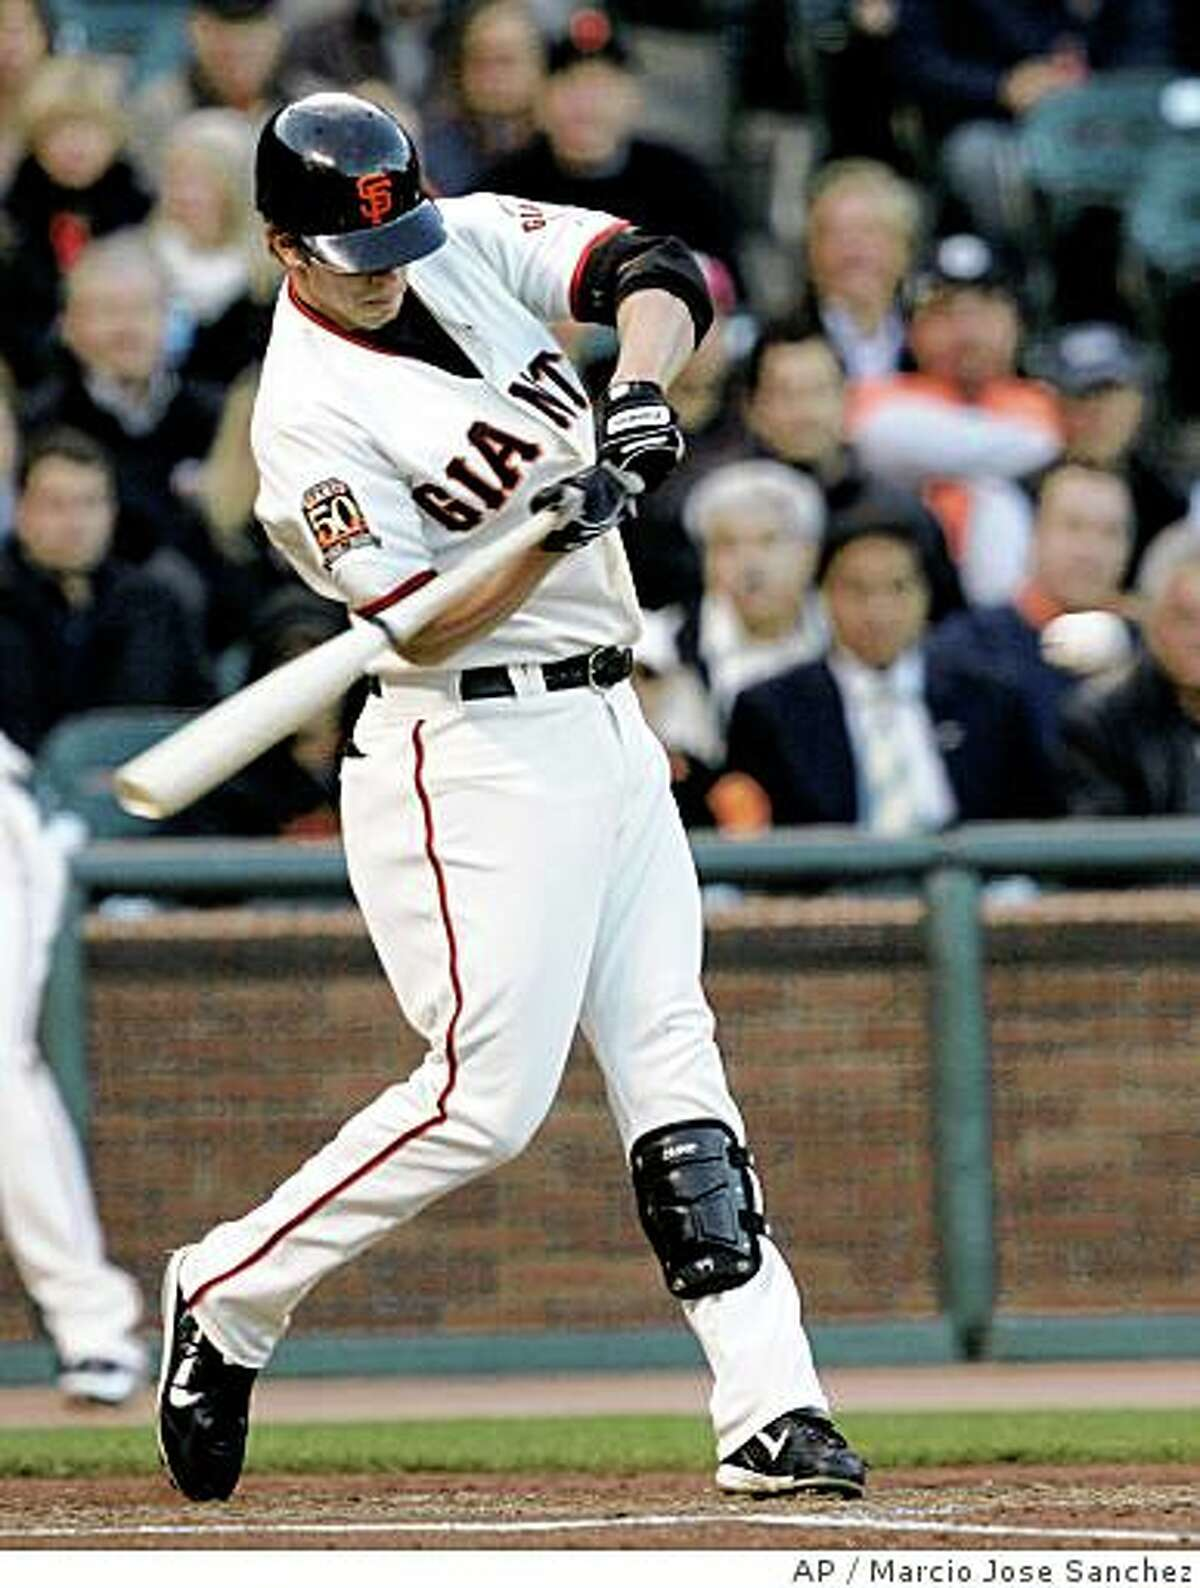 San Francisco Giants' Brian Horwitz hits a two-run home run off New York Mets starting pitcher Oliver Perez in the first inning of a baseball game in San Francisco, Monday, June 2, 2008. (AP Photo/Marcio Jose Sanchez)